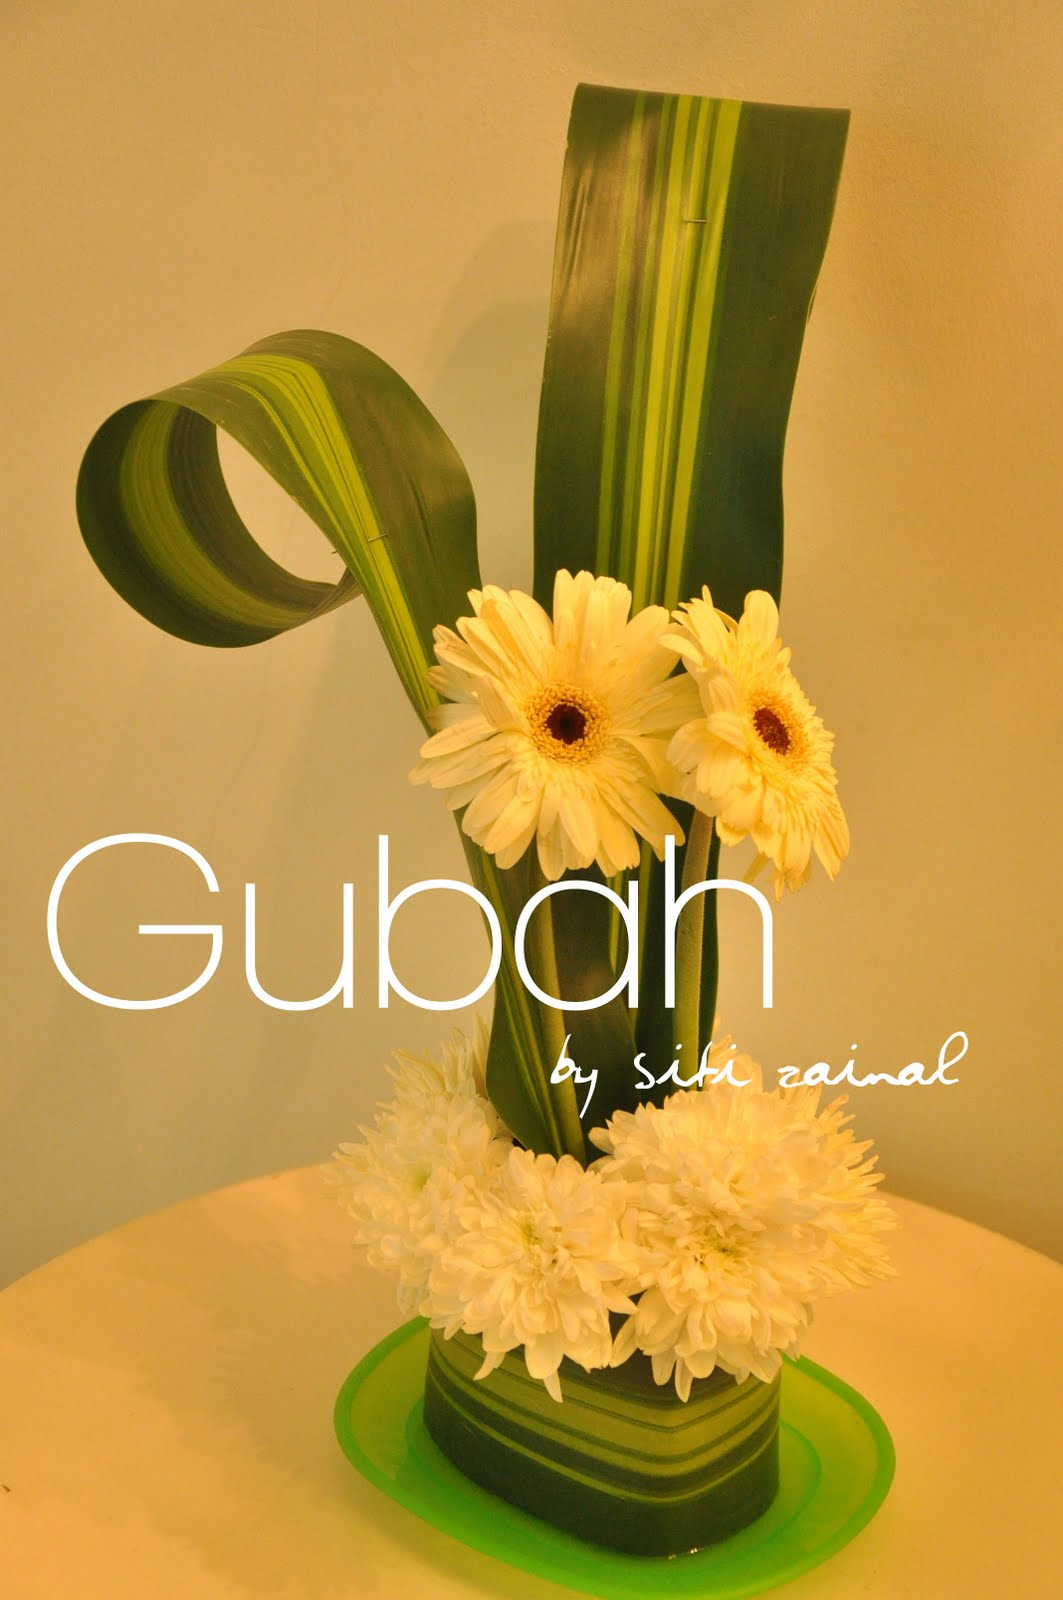 Gubah by siti zainal centerpiece samples calla lilies